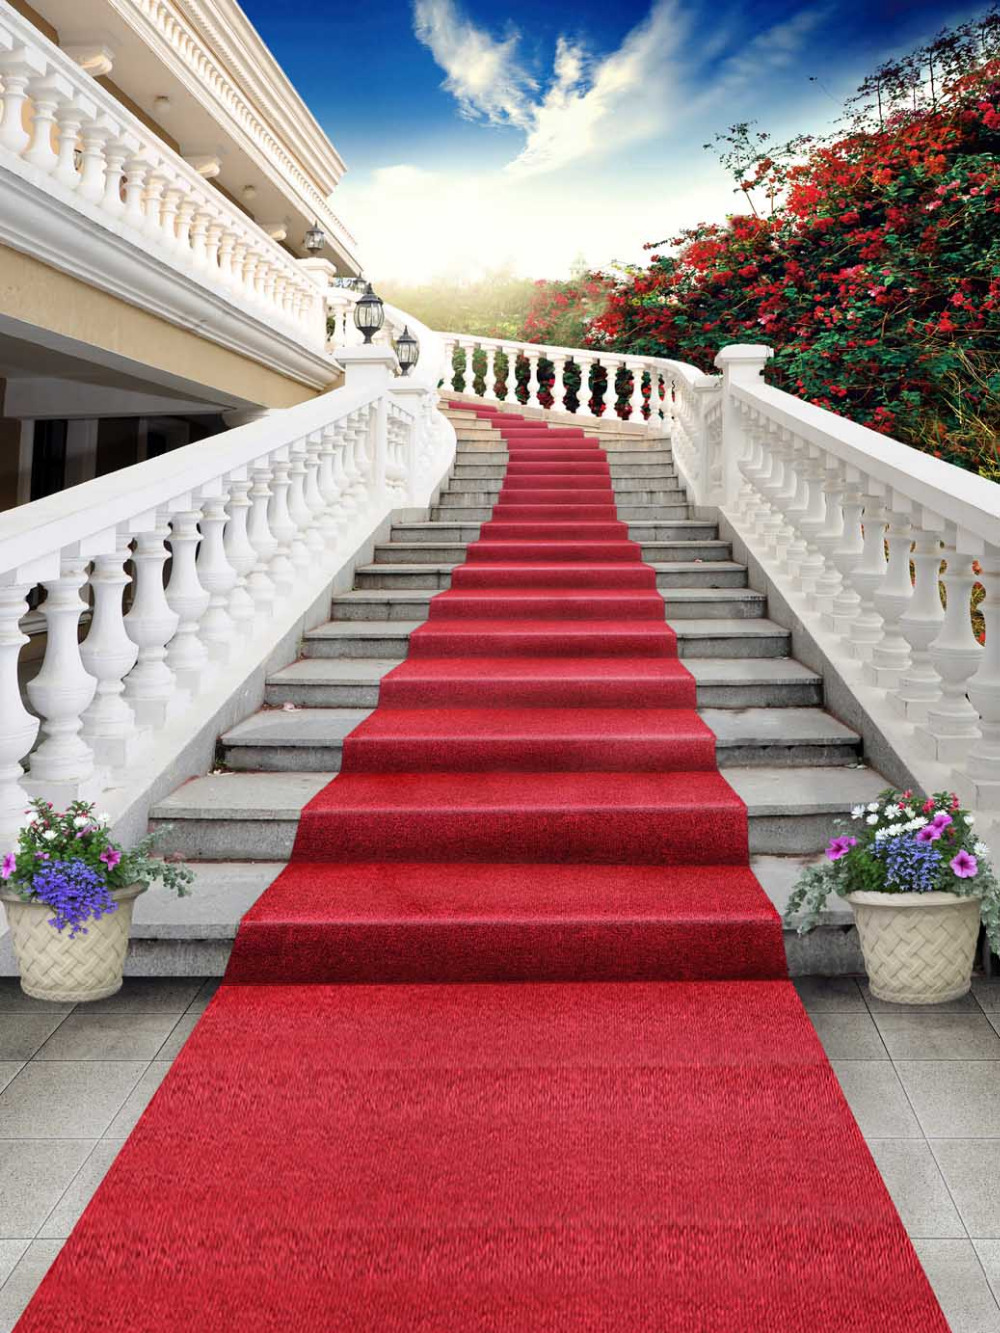 Compare Prices On Red Carpet Entrance Online Shopping Buy